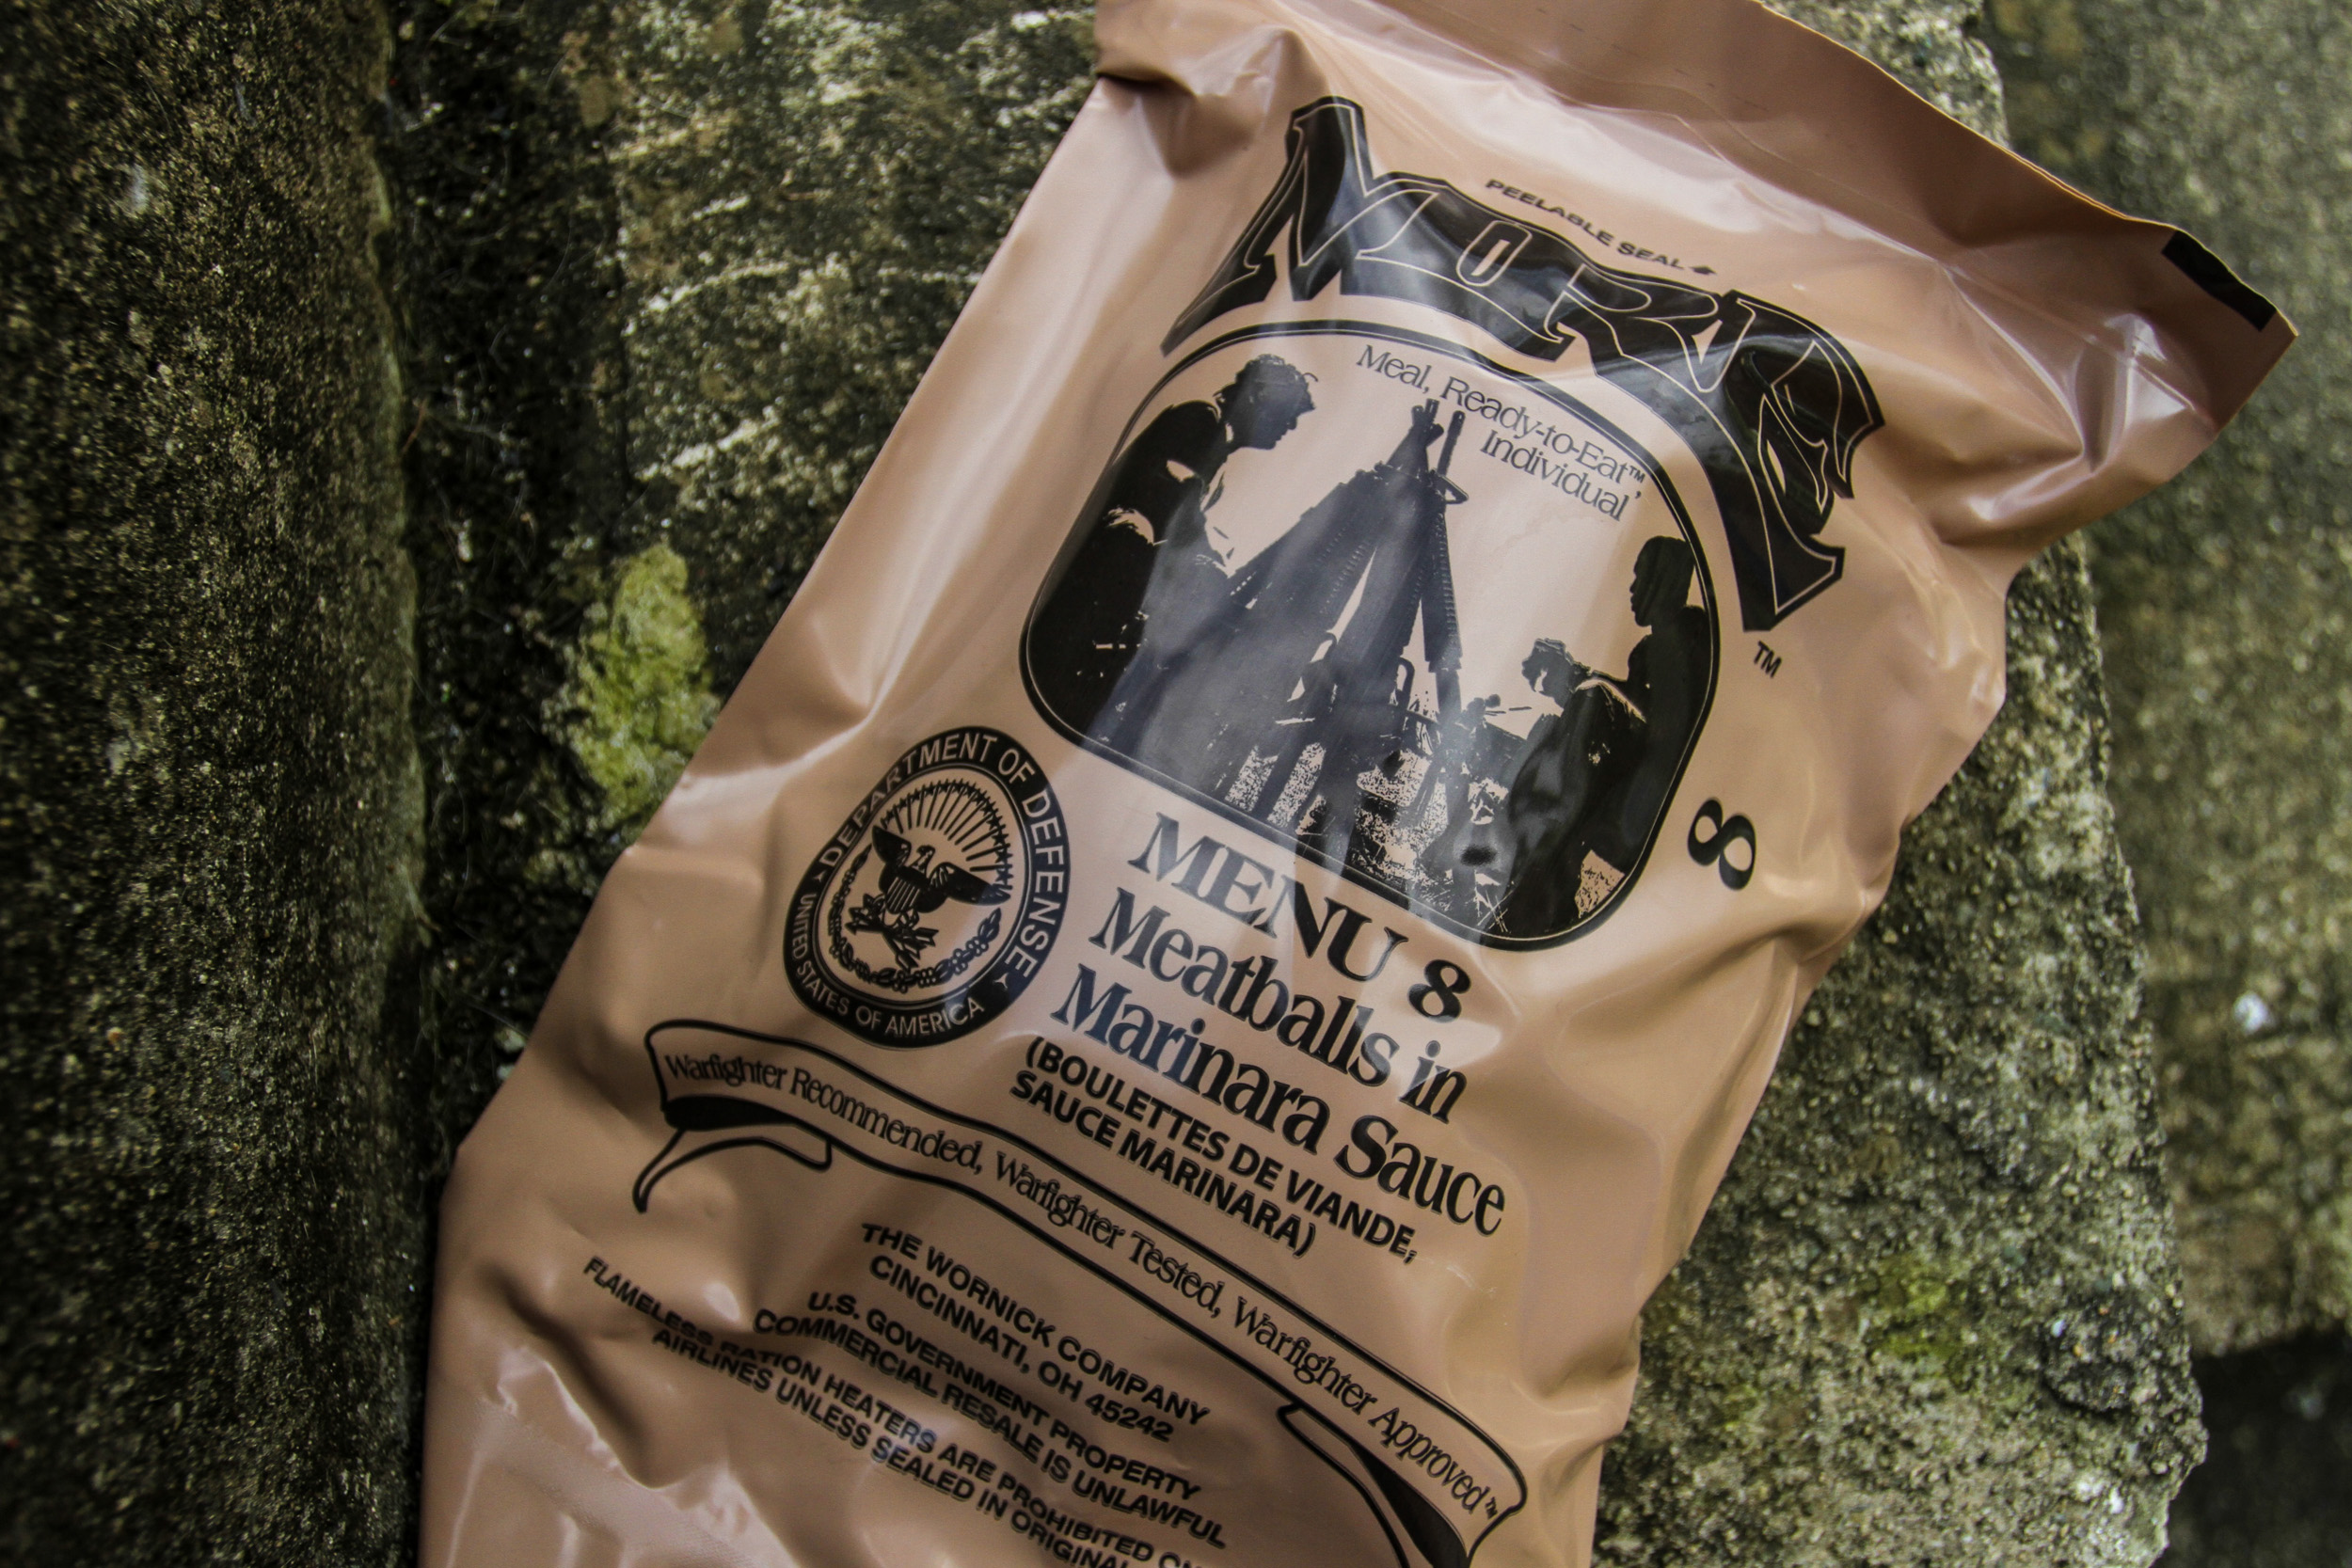 MRE (Meal Ready-to-Eat)